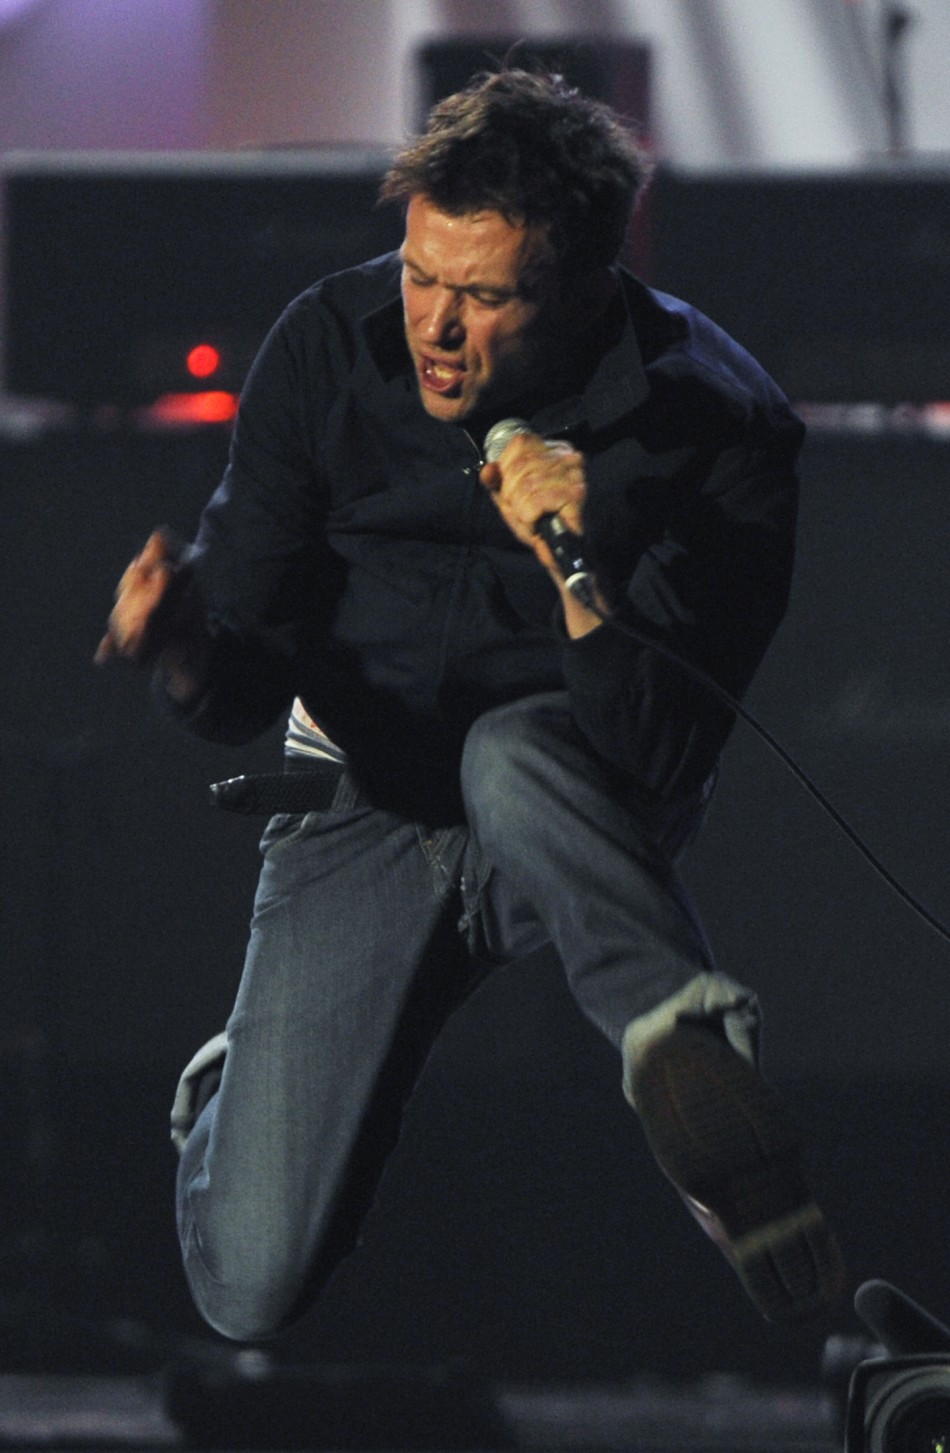 Damon Albarn performs with his band Blur during the BRIT Music Awards at the O2 Arena in London